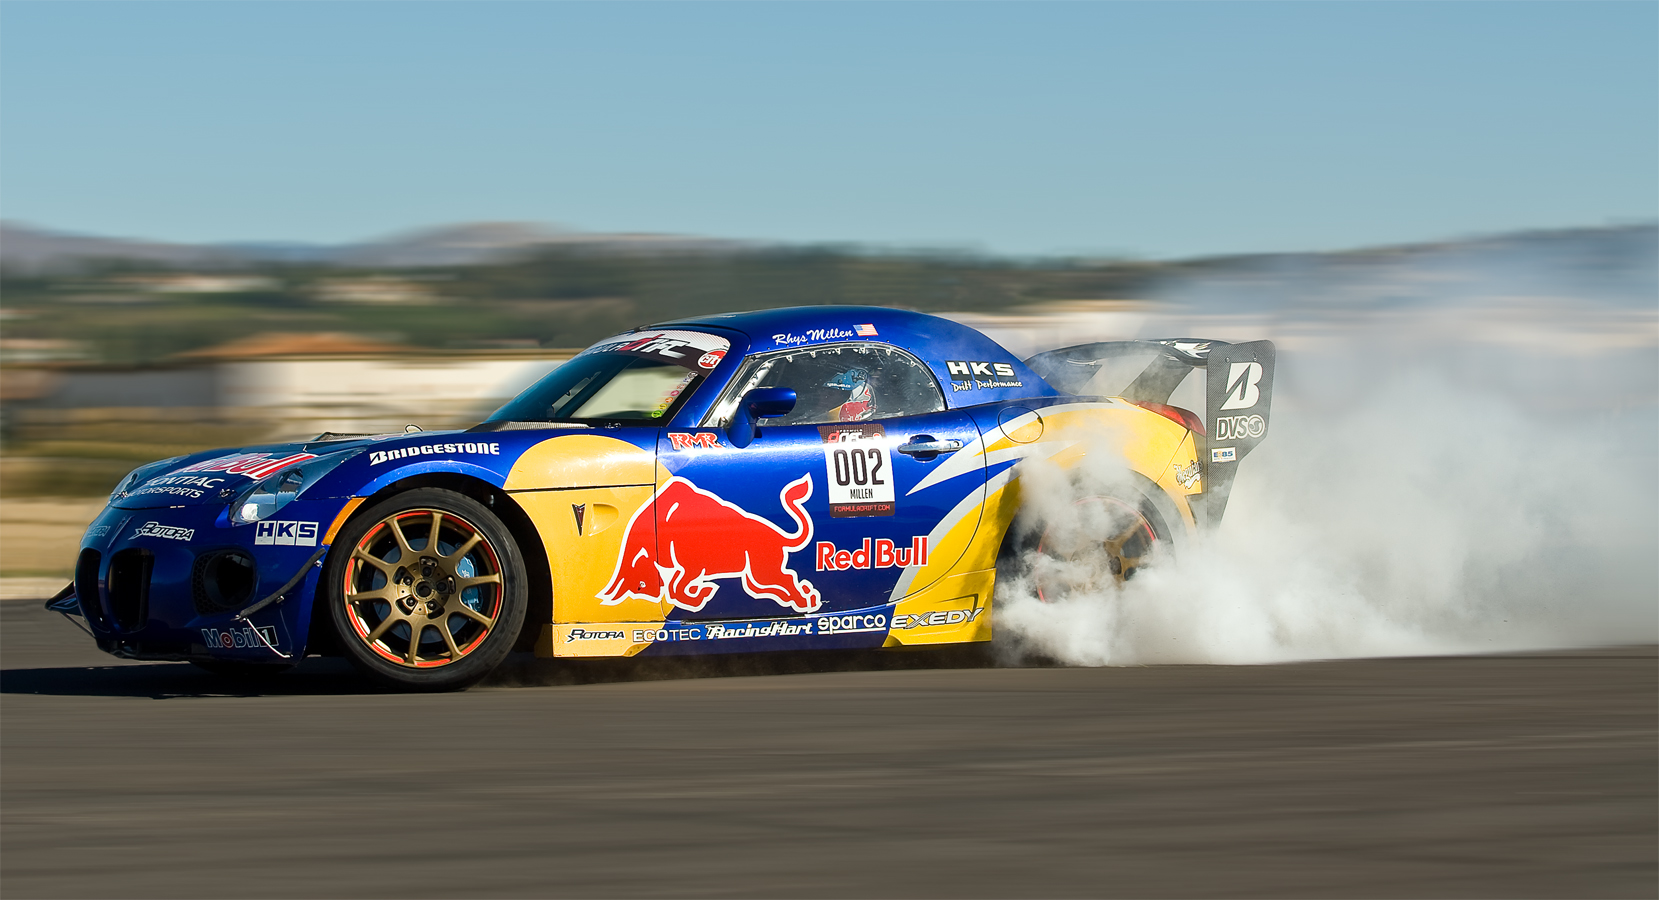 Red Bull Drift Car Driver Rhys MillenCamarillo, California© jason arnold / jasonarnoldphotography.com